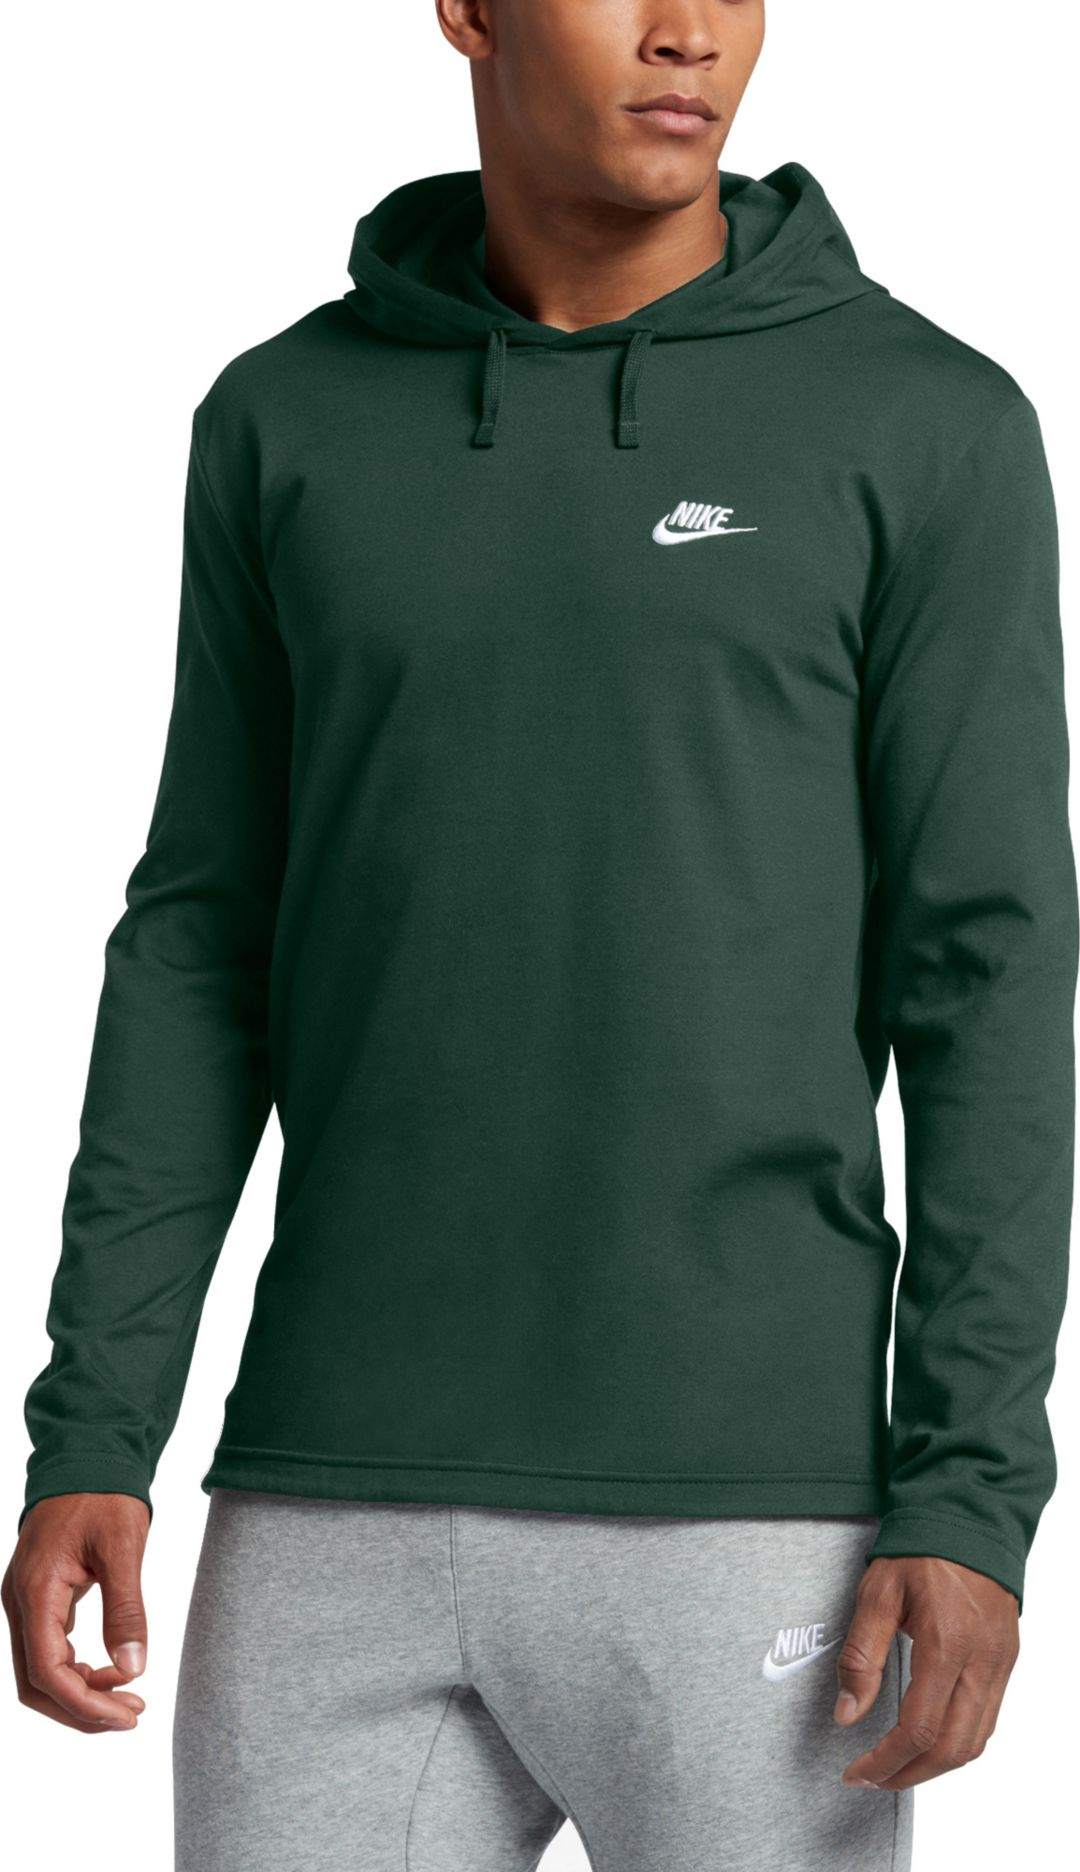 detailed look 7167f 2c74e Nike Men's Jersey Lightweight Pullover Hoodie